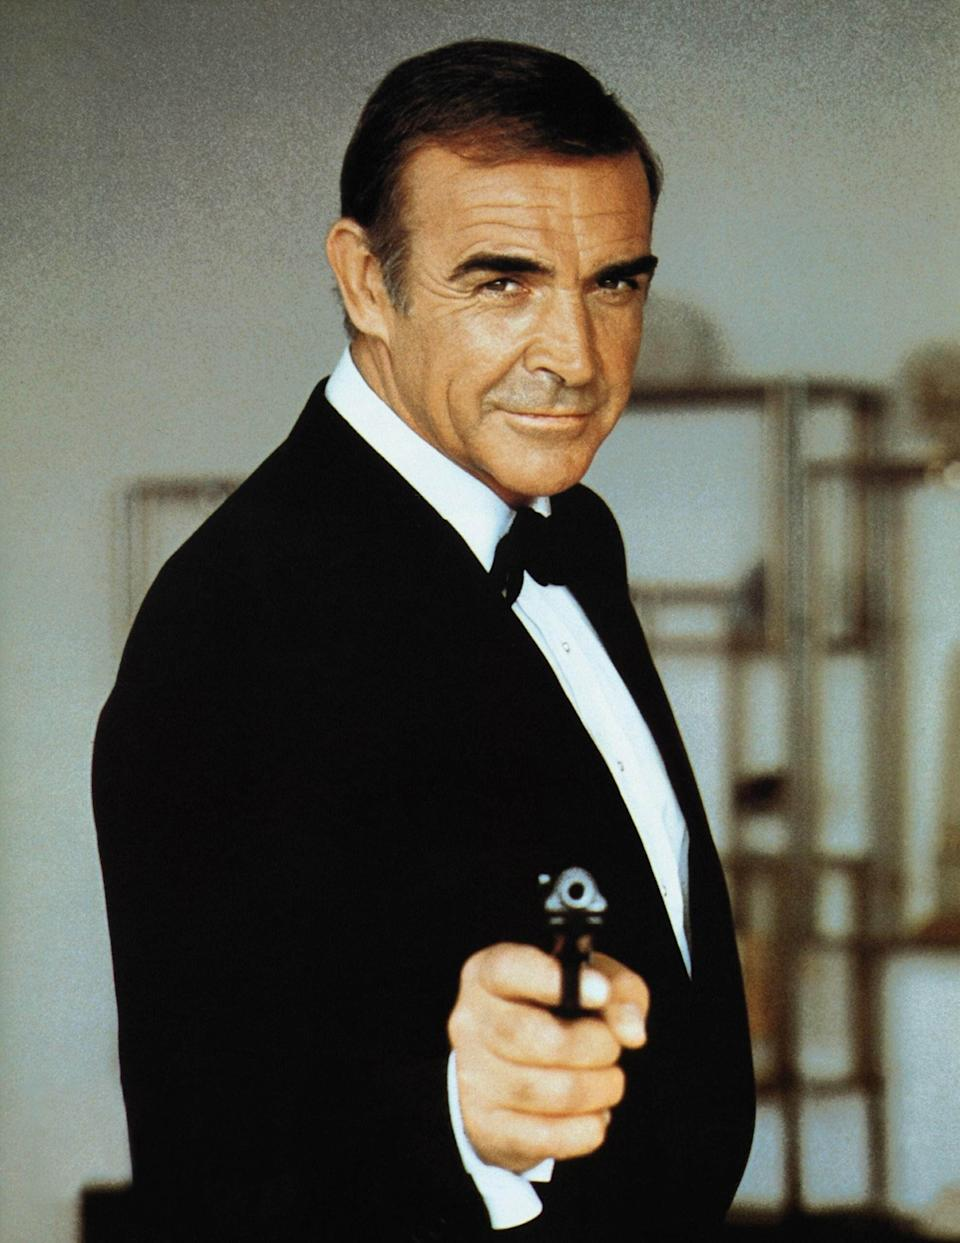 Sean Connery was the first actor to bring James Bond to the big screen. (Photo: Rex)